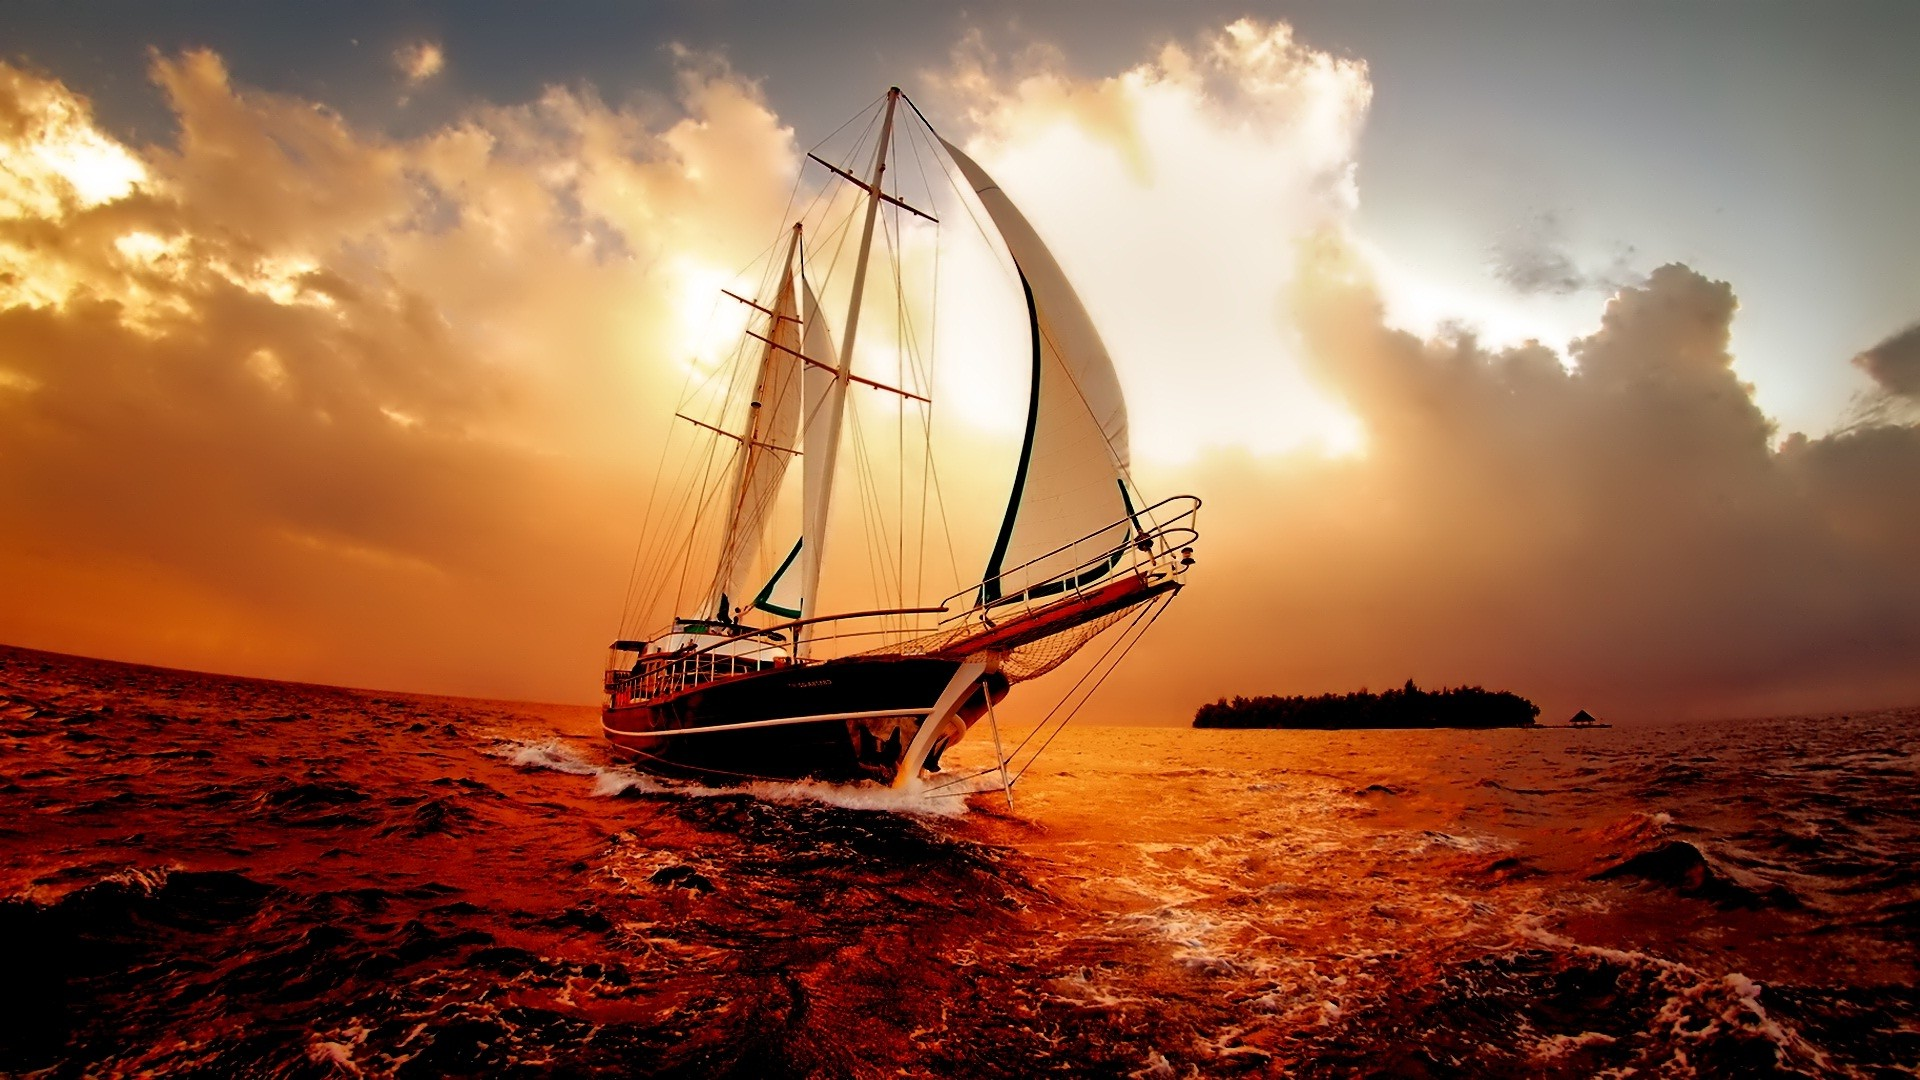 Res: 1920x1080, Amazing-Boat-in-Sea-Marvelous-new hd wallpapers ...